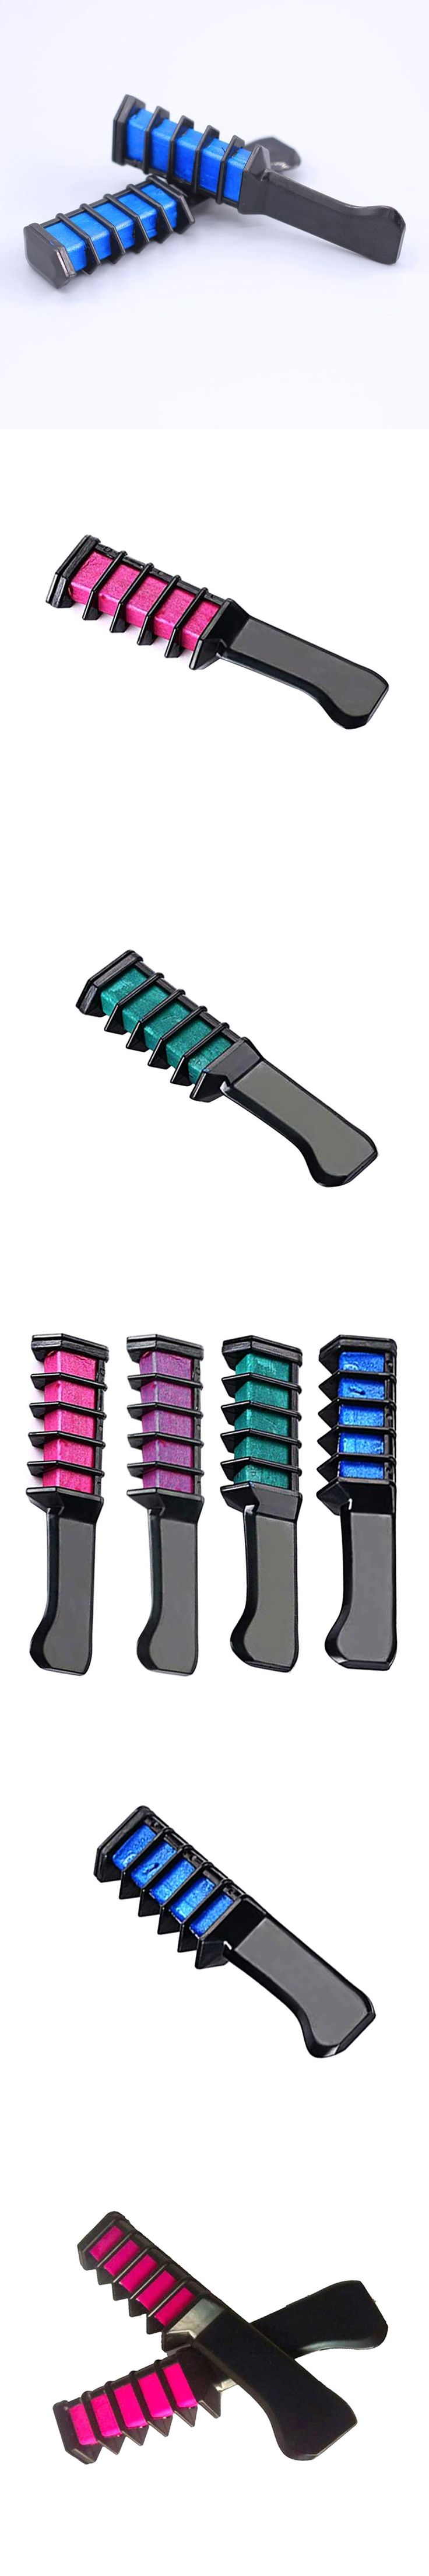 2016 Professional Semi Permanent Hair Color Chalk Powder With Comb Temporary Hair Mascara Multicolor Dye Tool